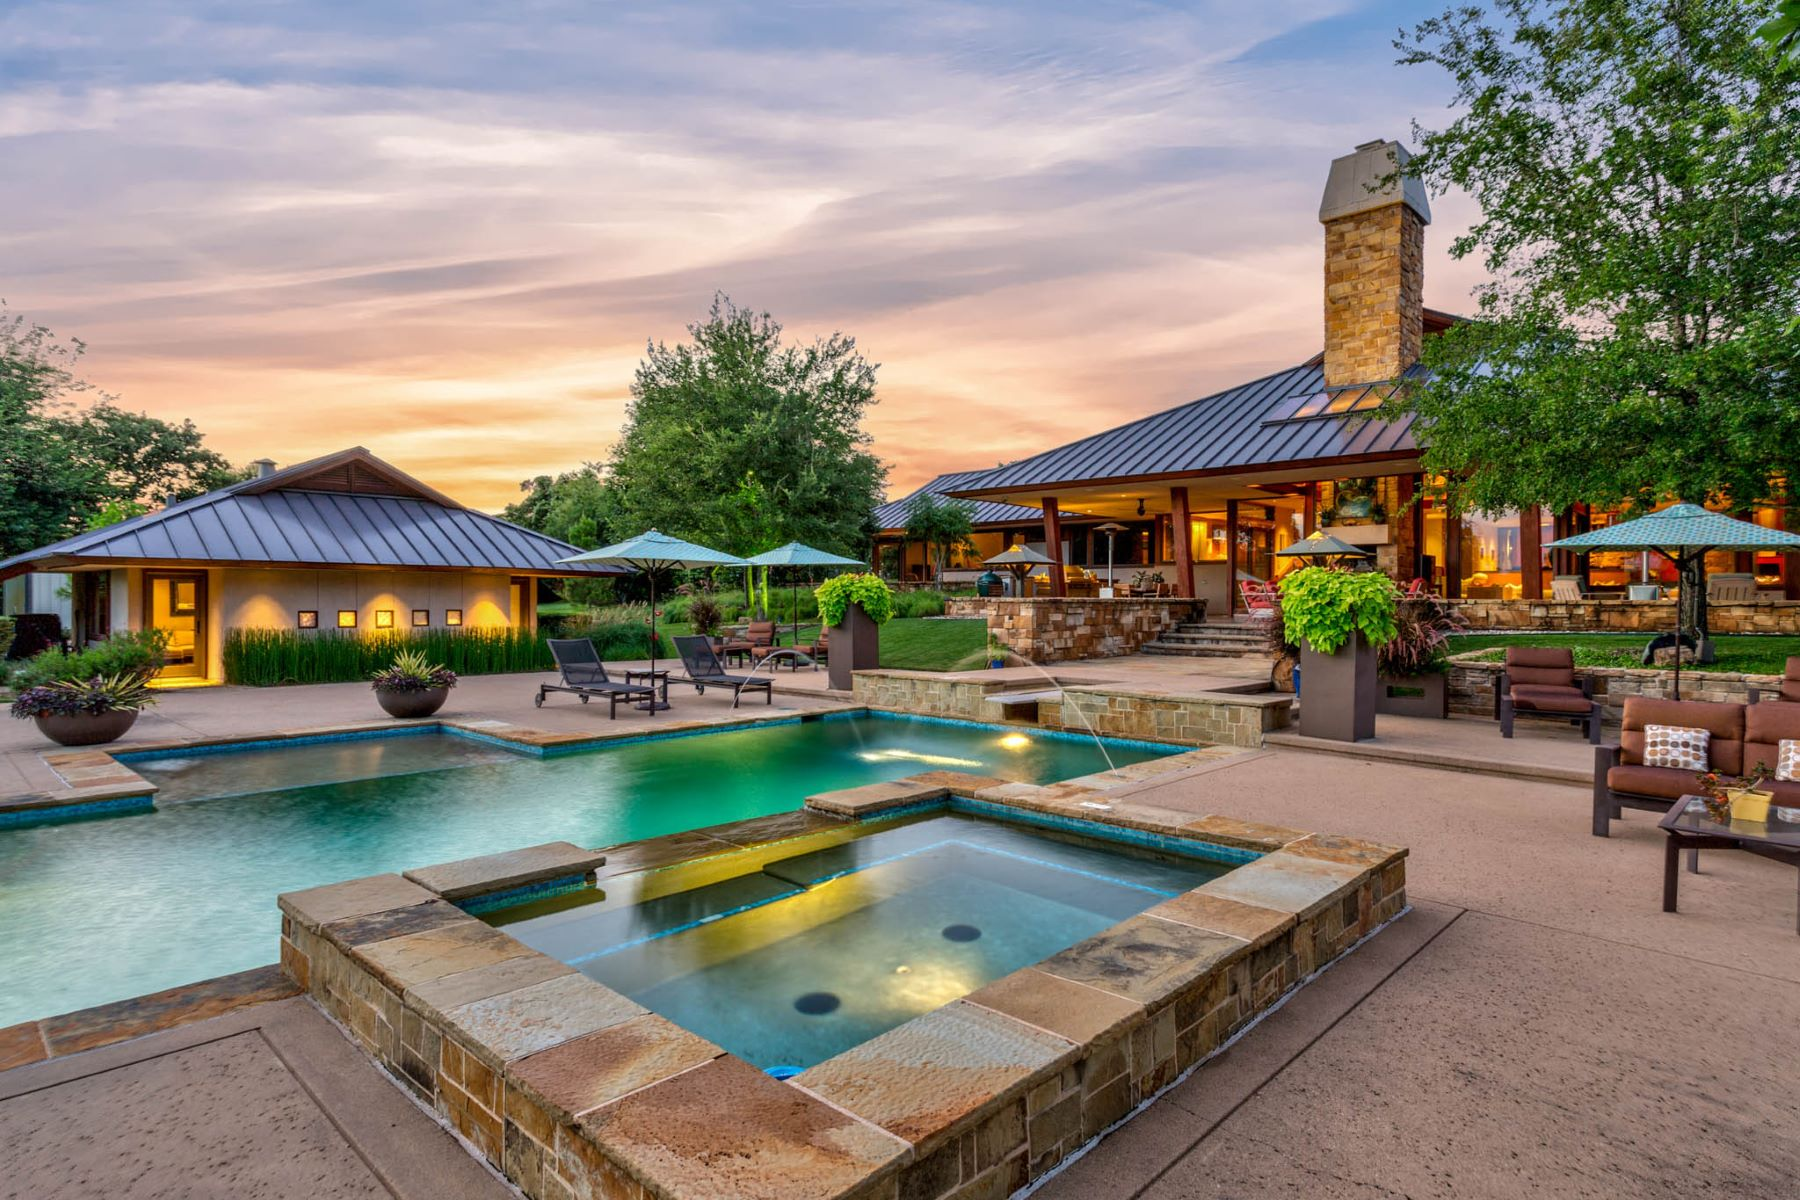 Single Family Homes for Sale at Sustainable Ranch Style Home with Mid-Century Flair 4808 Bill Simmons Road Colleyville, Texas 76034 United States